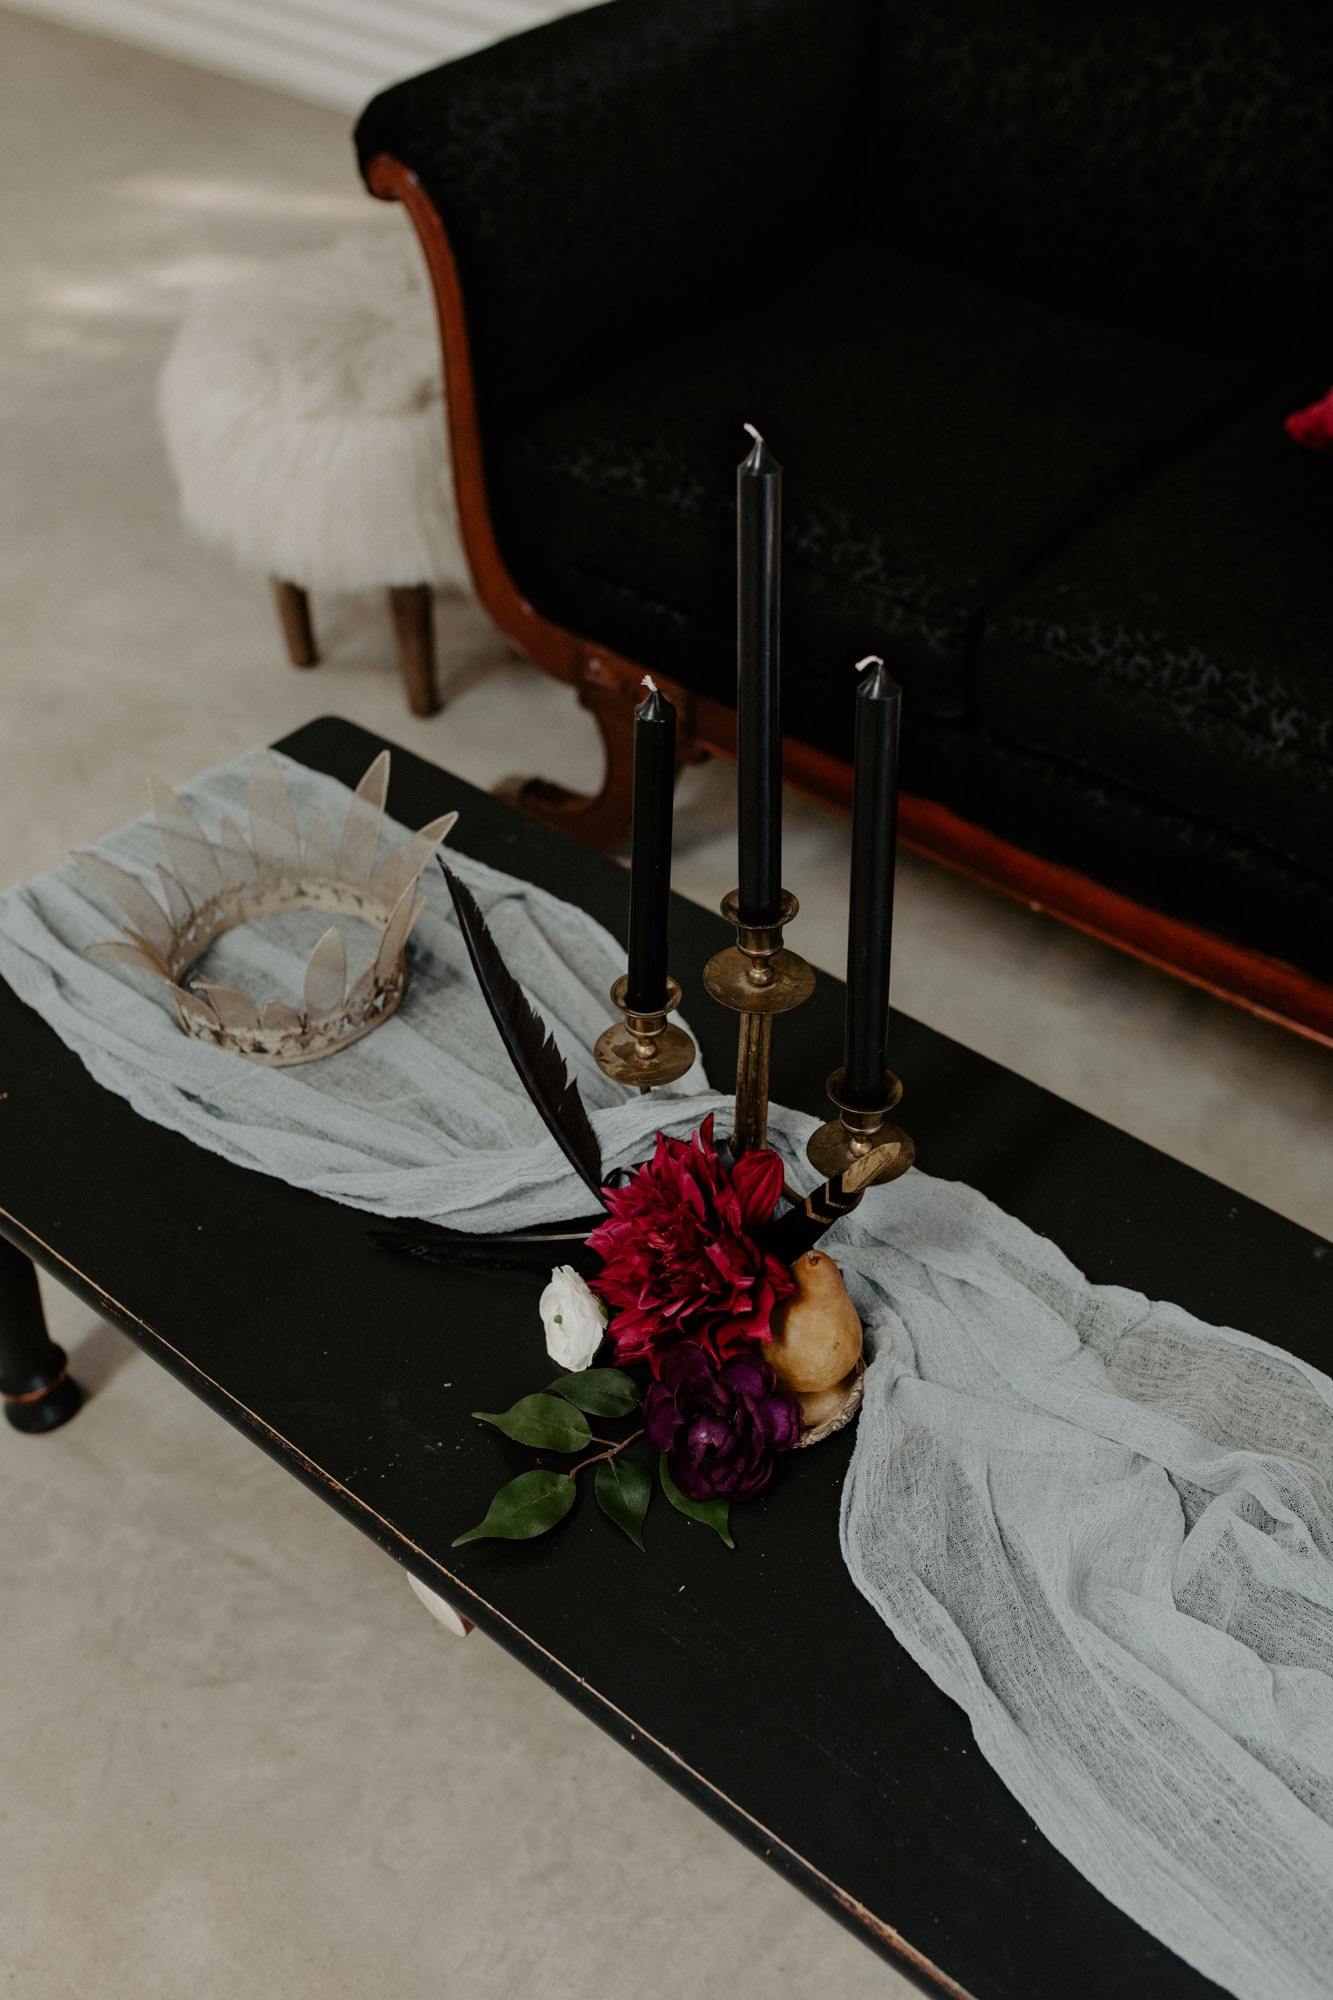 moody coffee table decor at wedding styled shoot